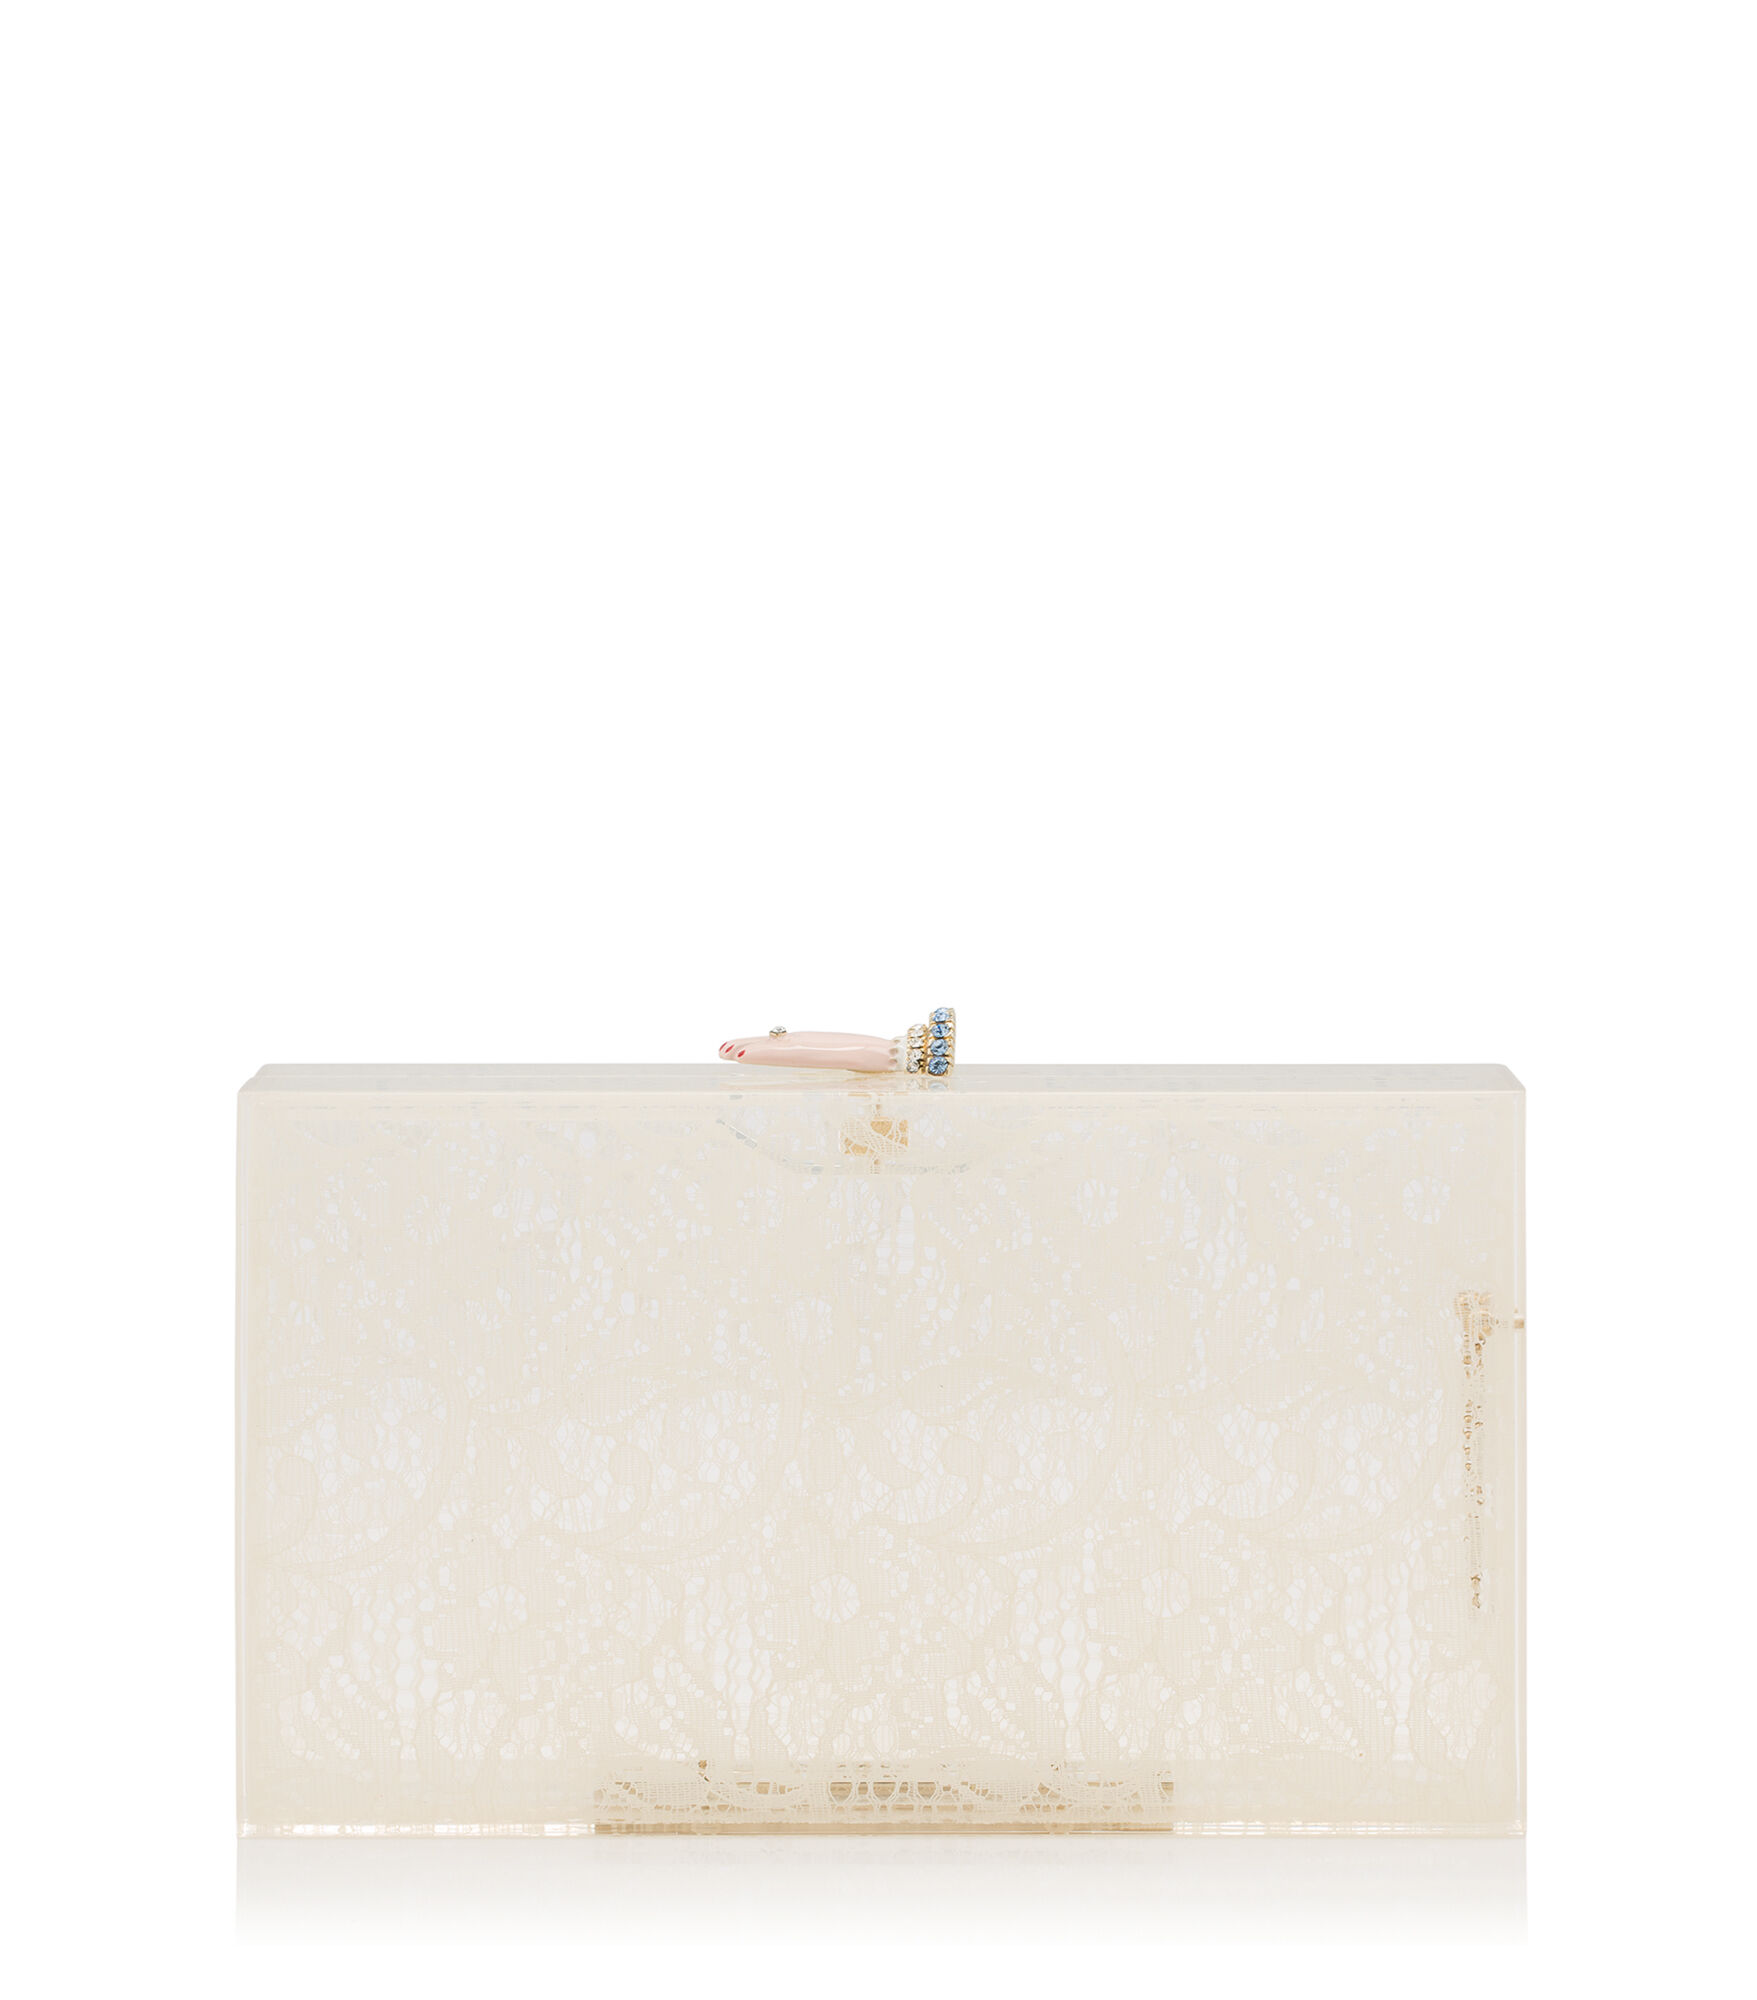 Charlotte Olympia Clutch and Handbags Women - ROCK ON PANDORA IVORY Perspex OS